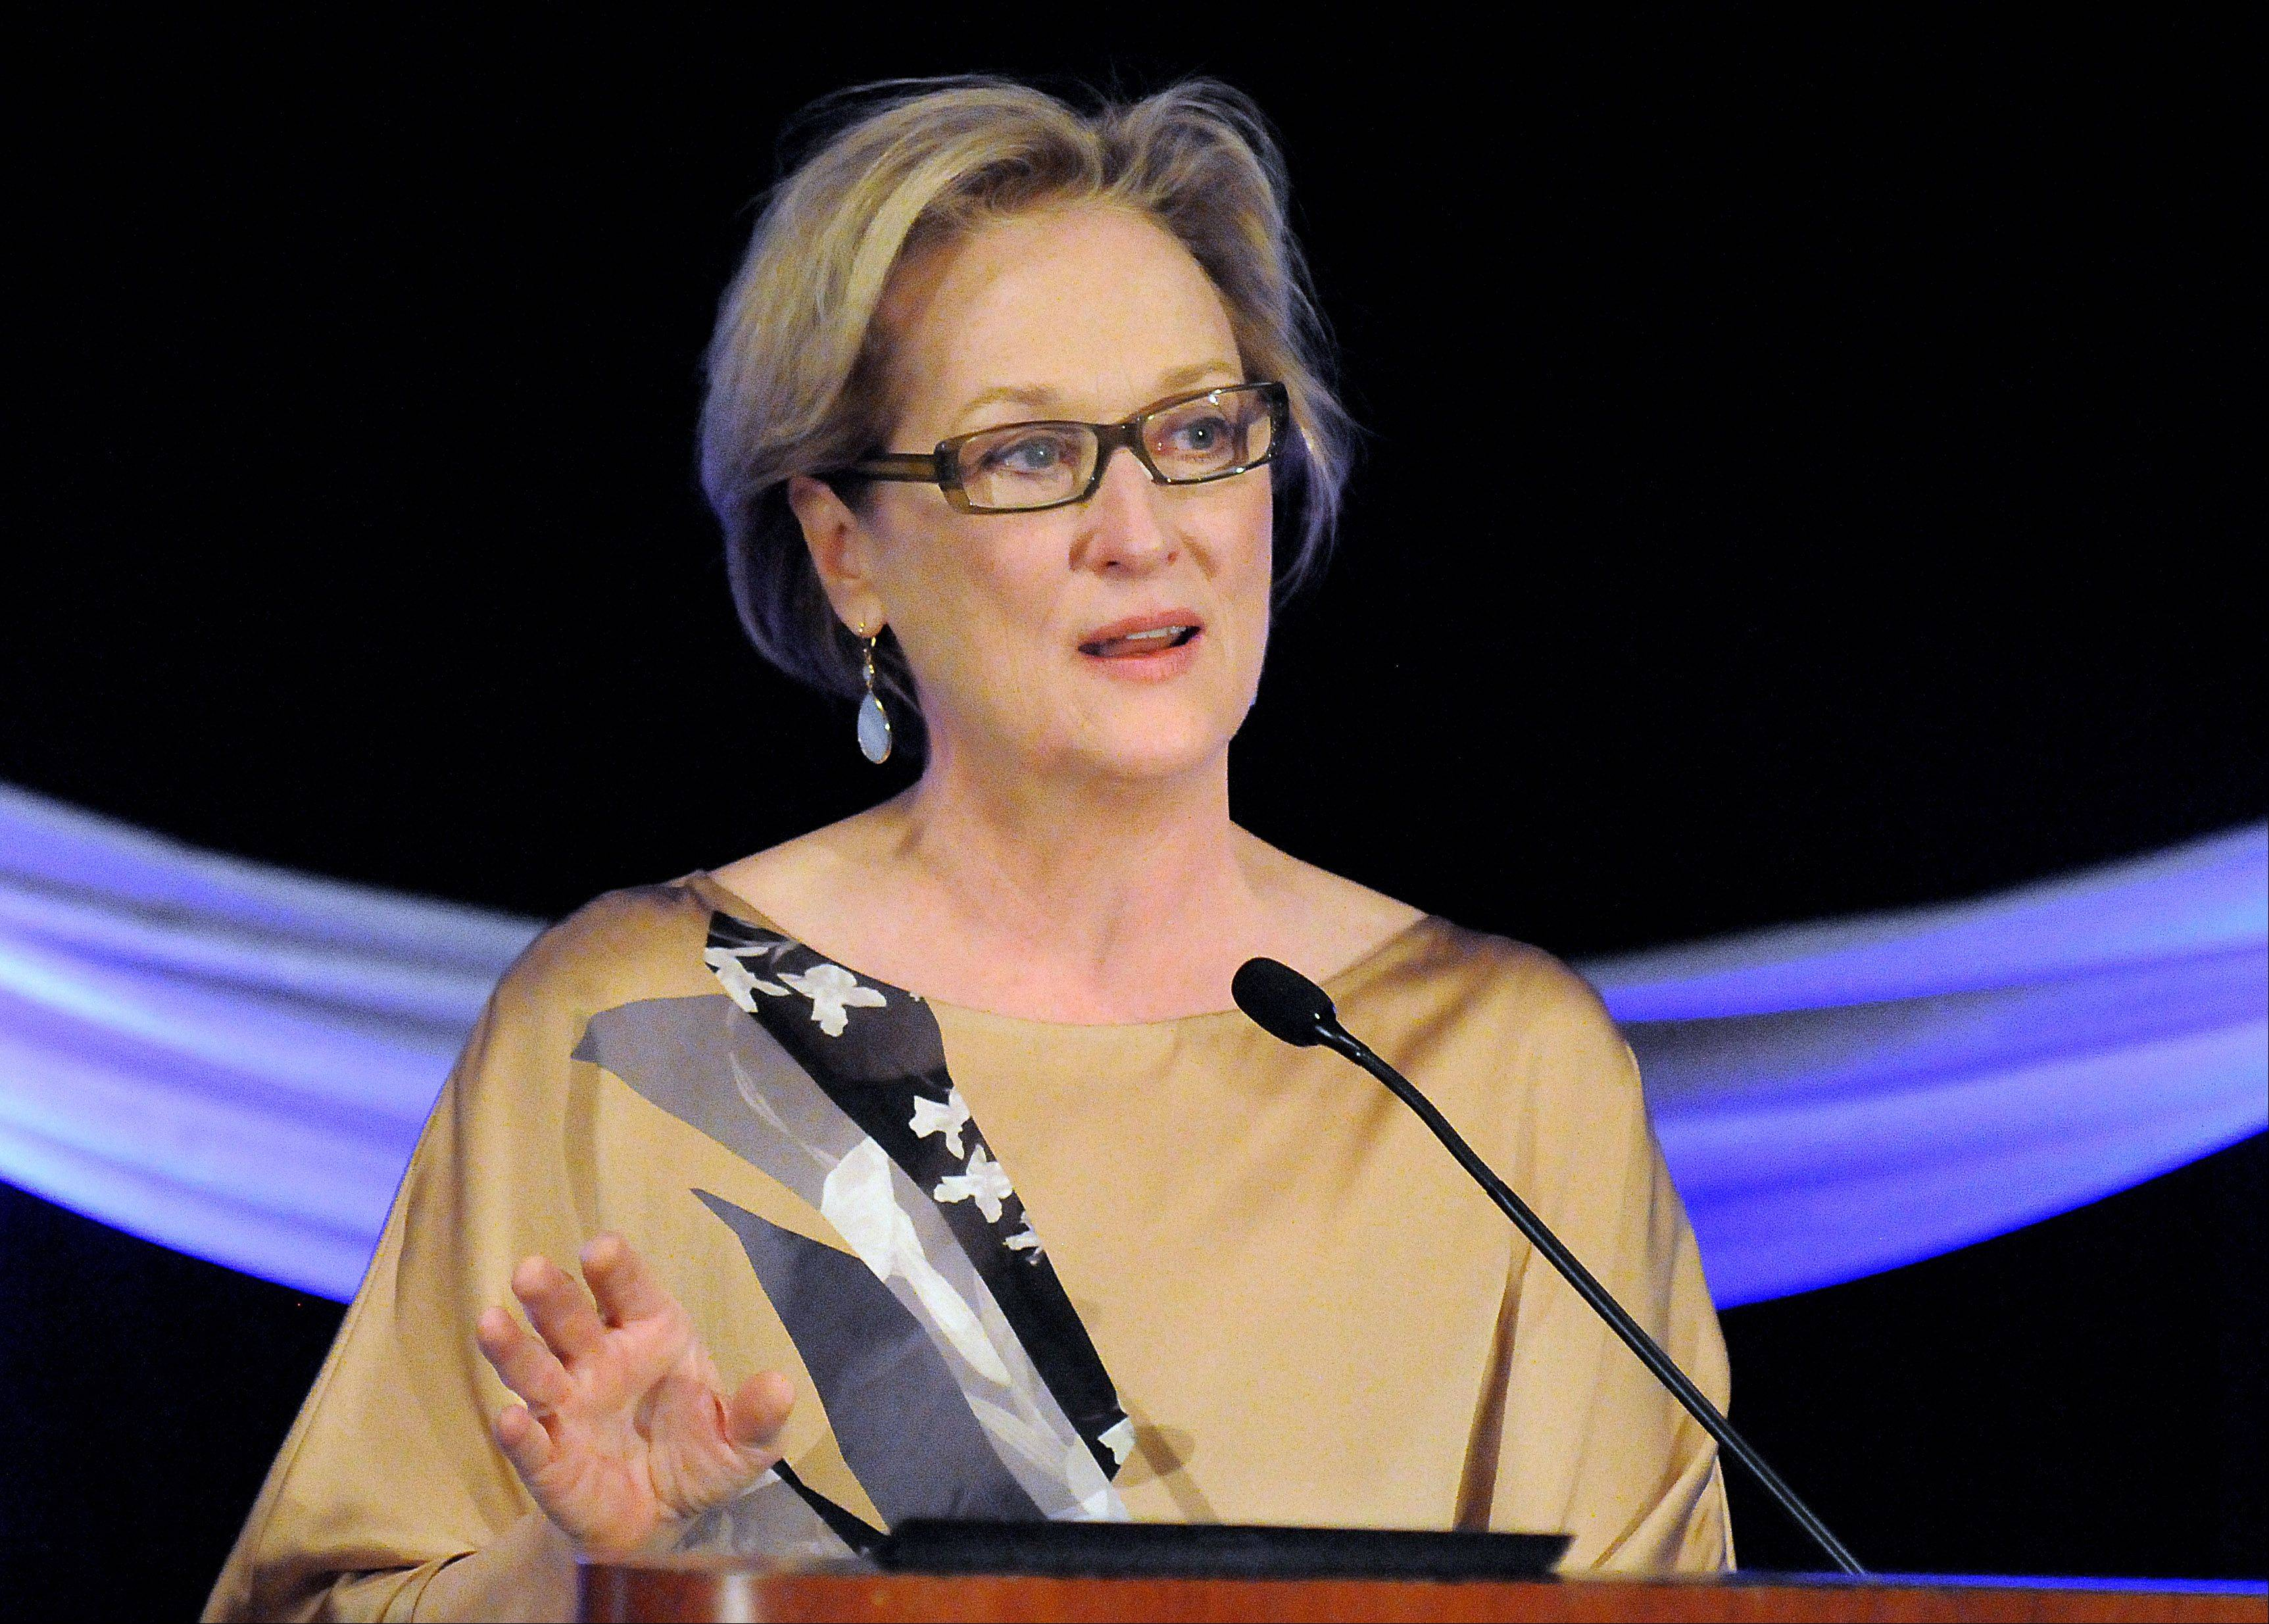 Meryl Streep speaks at a fundraiser for The Charlie Foundation to Help Cure Pediatric Epilepsy at Hilton Chicago Indian Lakes Resort in Bloomingdale on Friday.